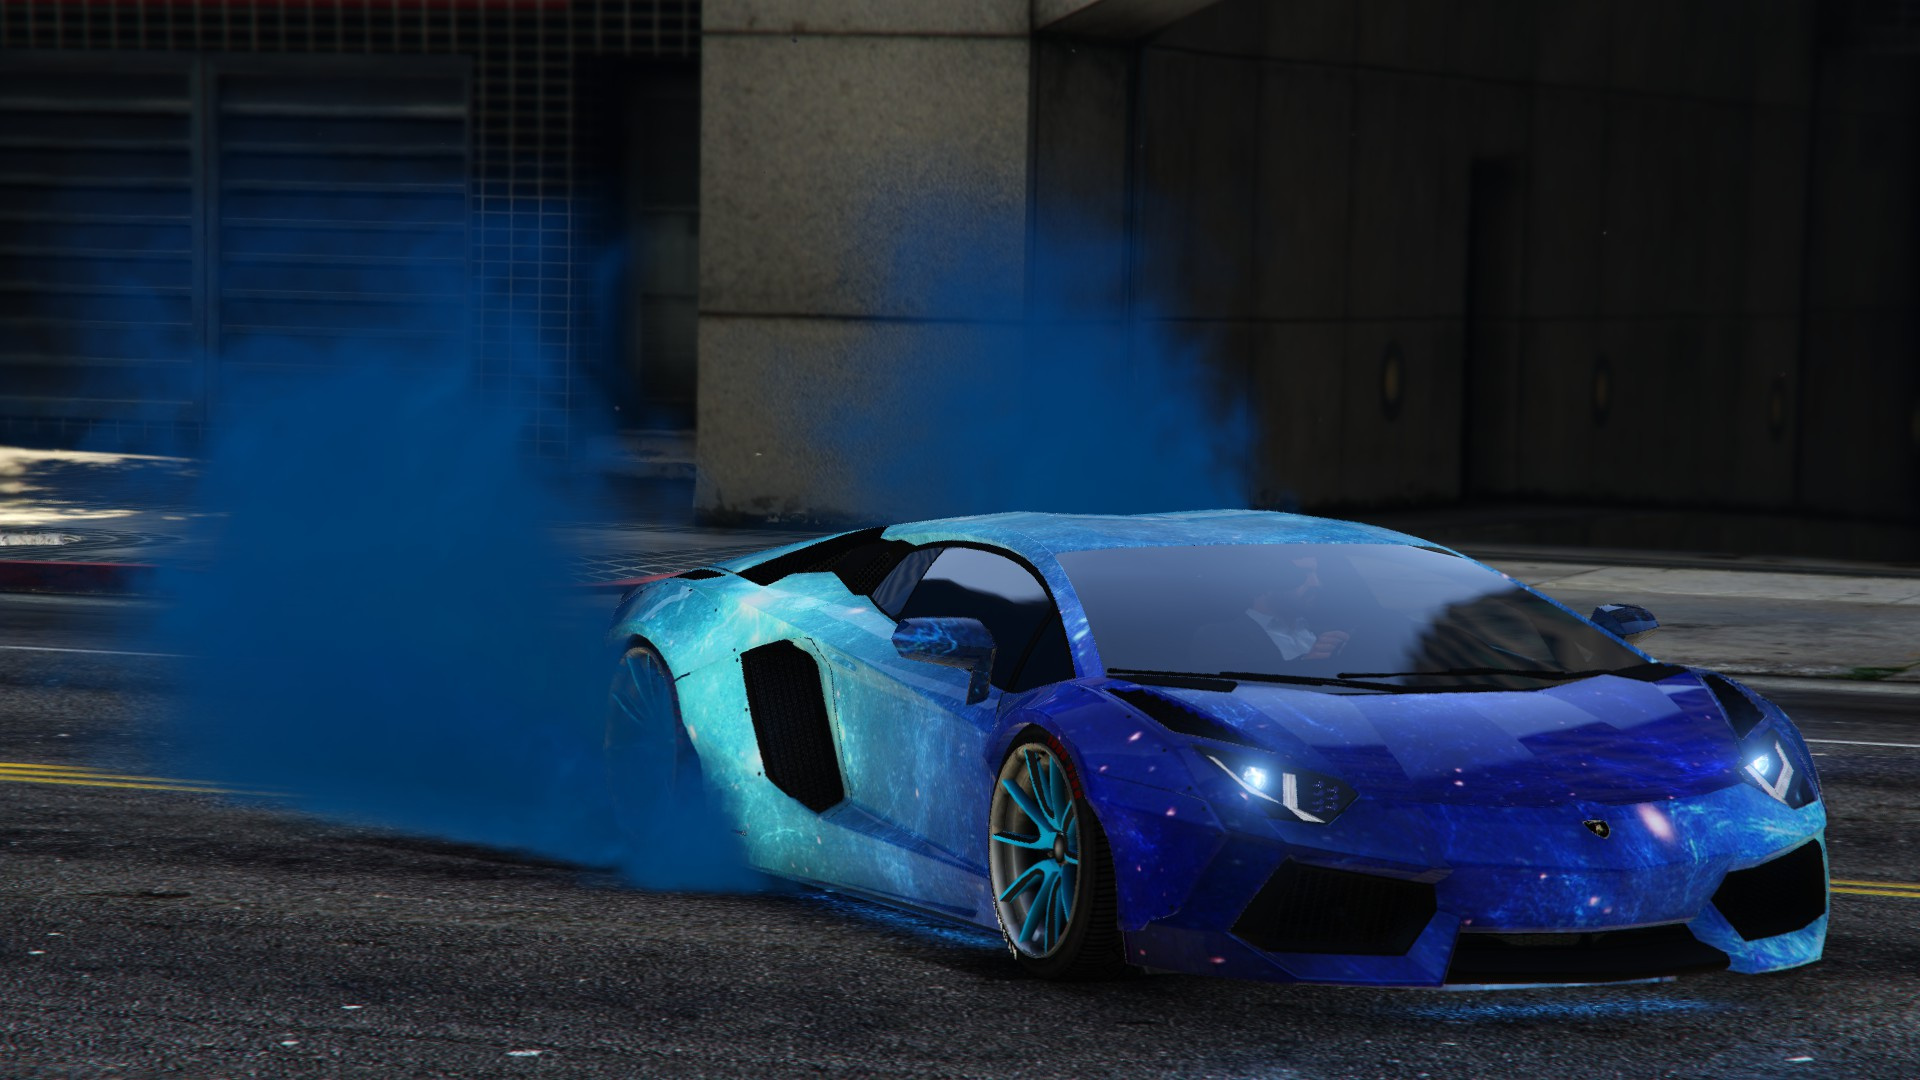 Blue Galaxy Livery For Lamborghini Aventador Liberty Walk